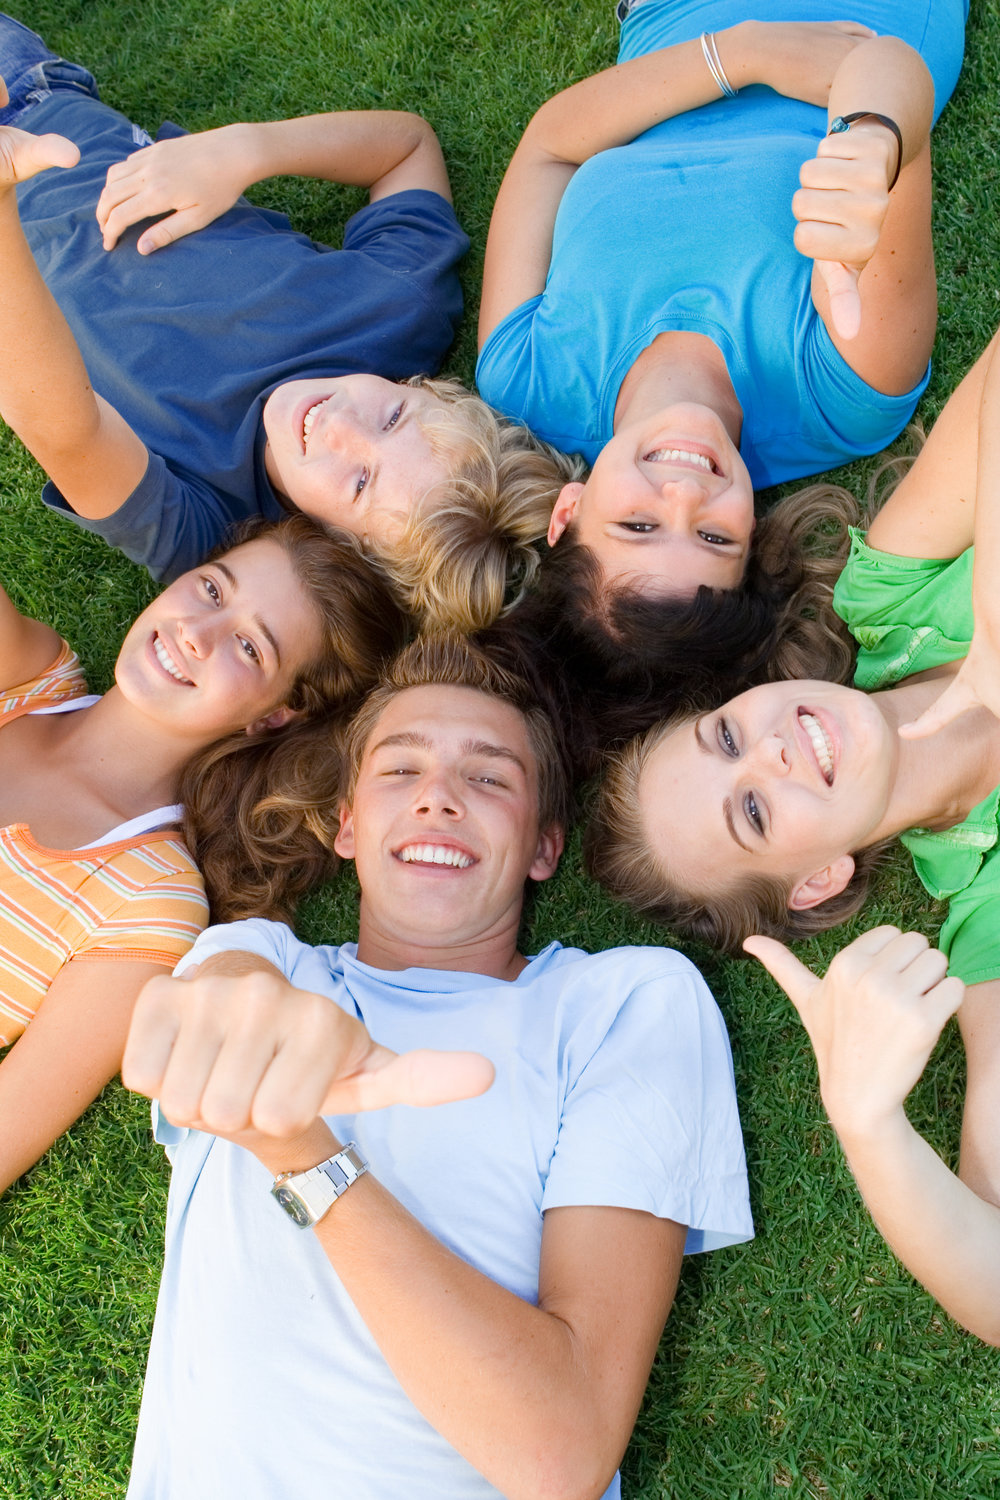 bigstock-happy-positive-teenagers-16236095.jpg